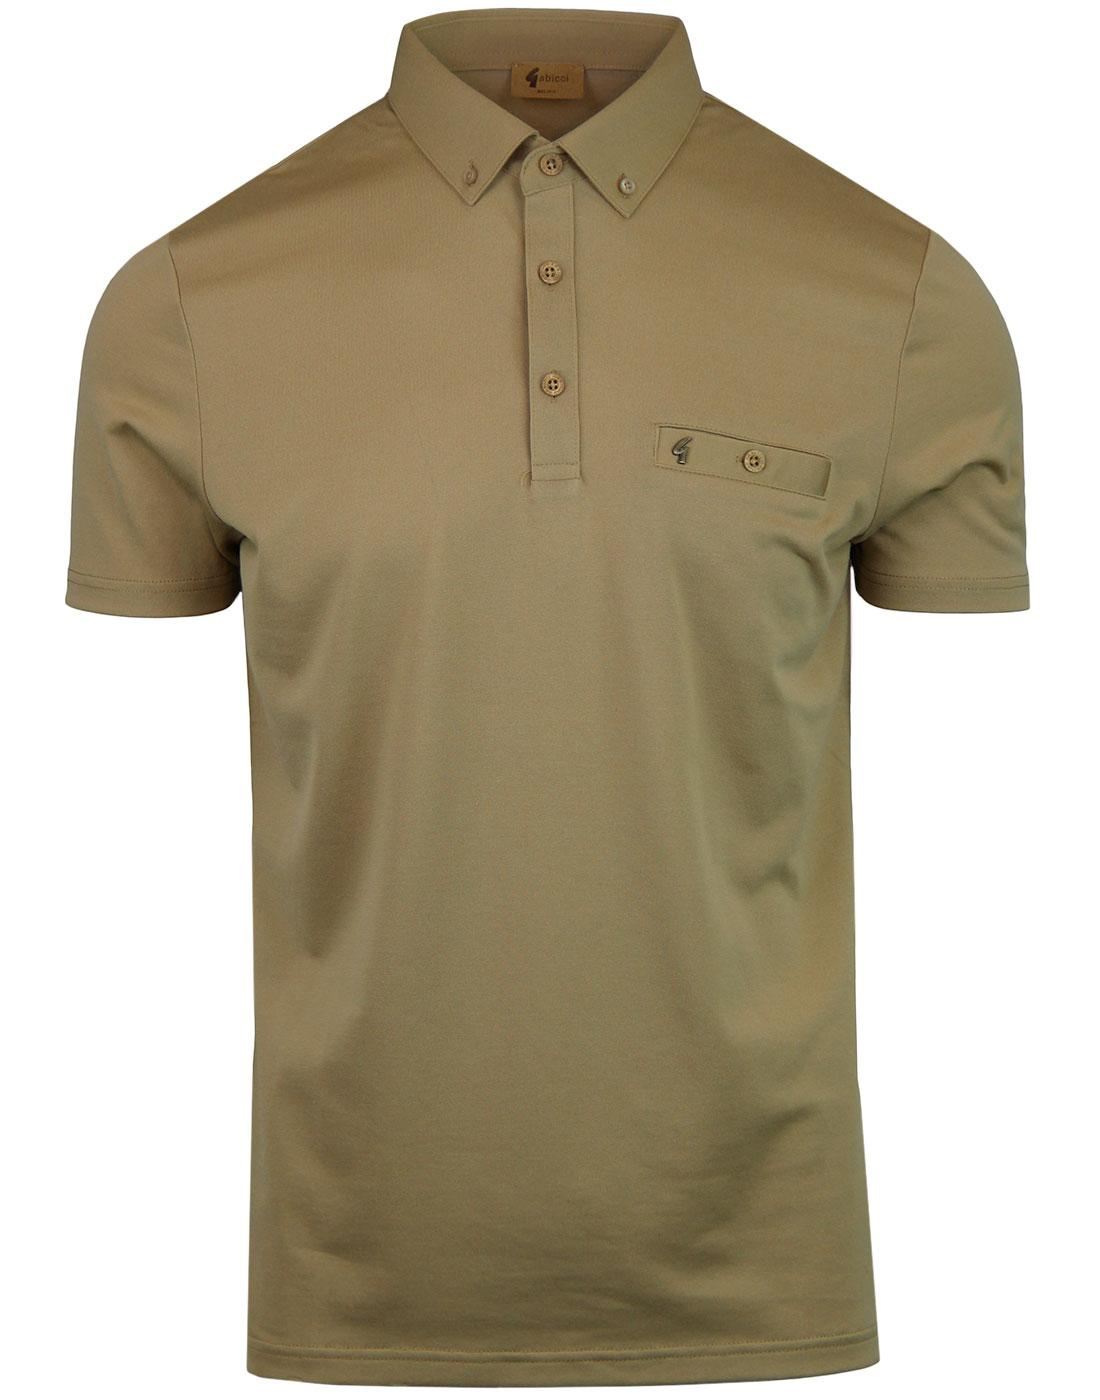 Ladro GABICCI VINTAGE Retro Button Down Polo FAWN